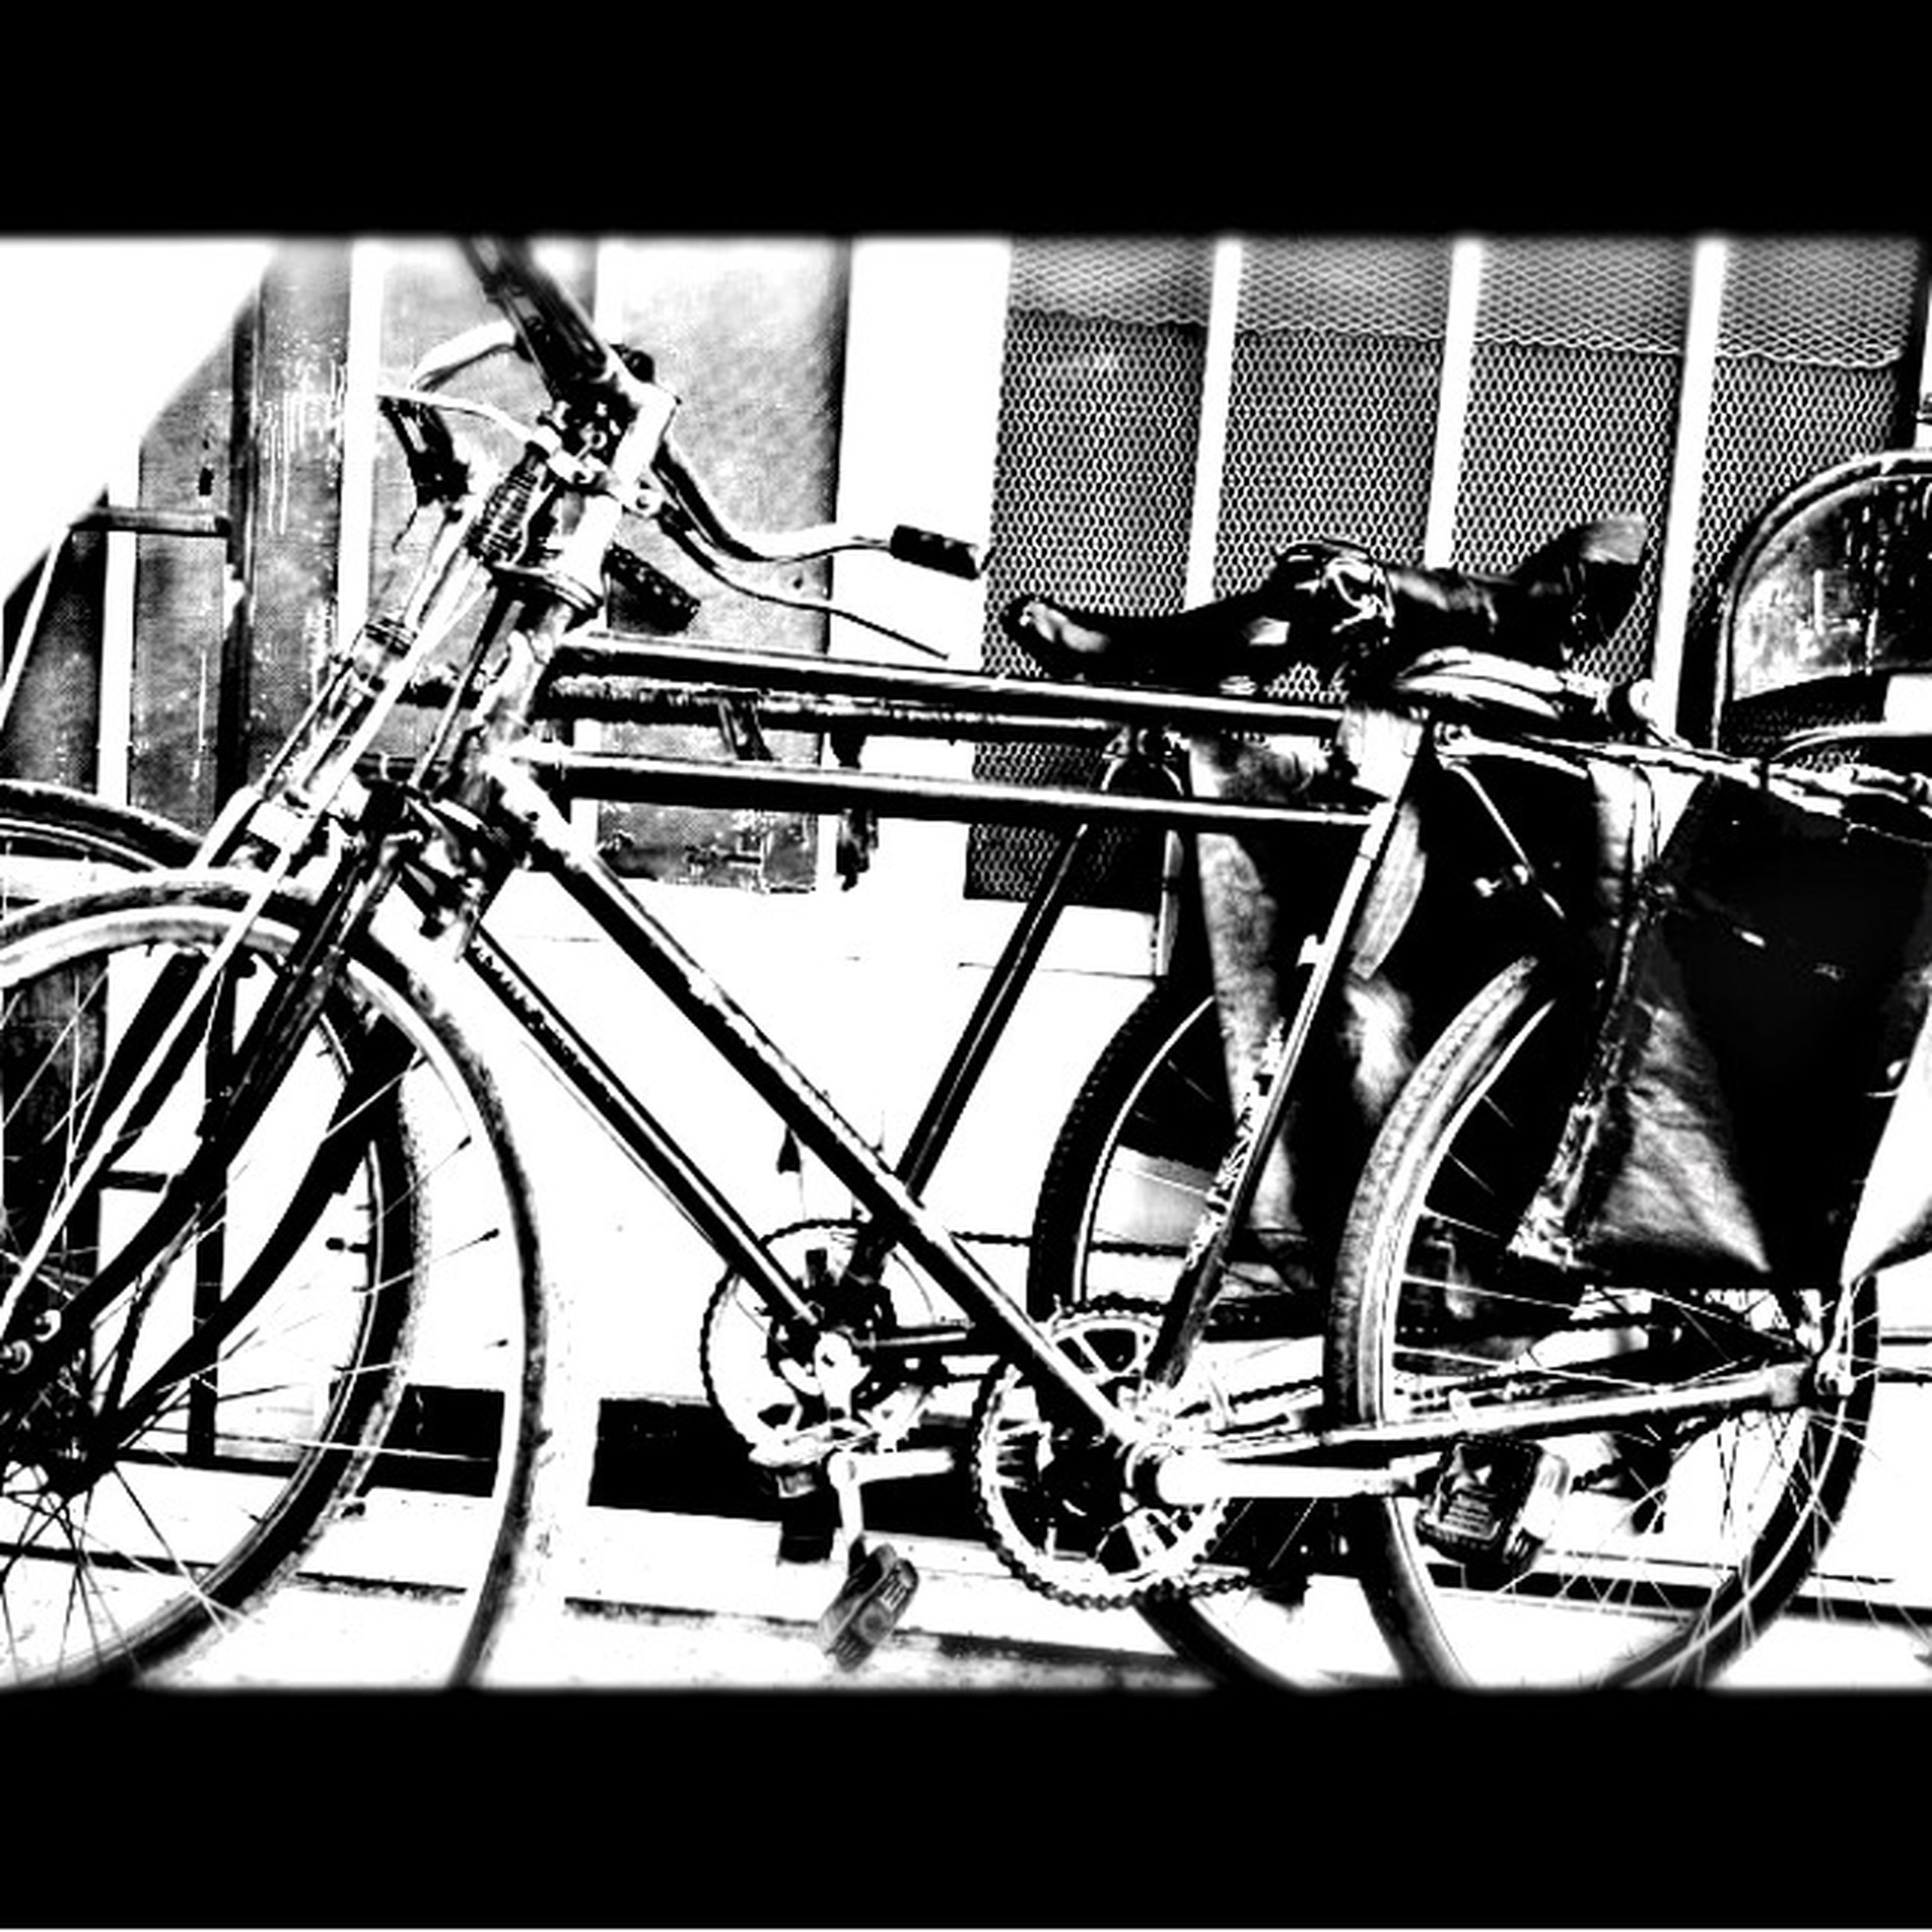 bicycle, land vehicle, mode of transport, building exterior, built structure, architecture, stationary, transportation, transfer print, parked, auto post production filter, parking, railing, window, day, no people, metal, outdoors, wheel, low angle view